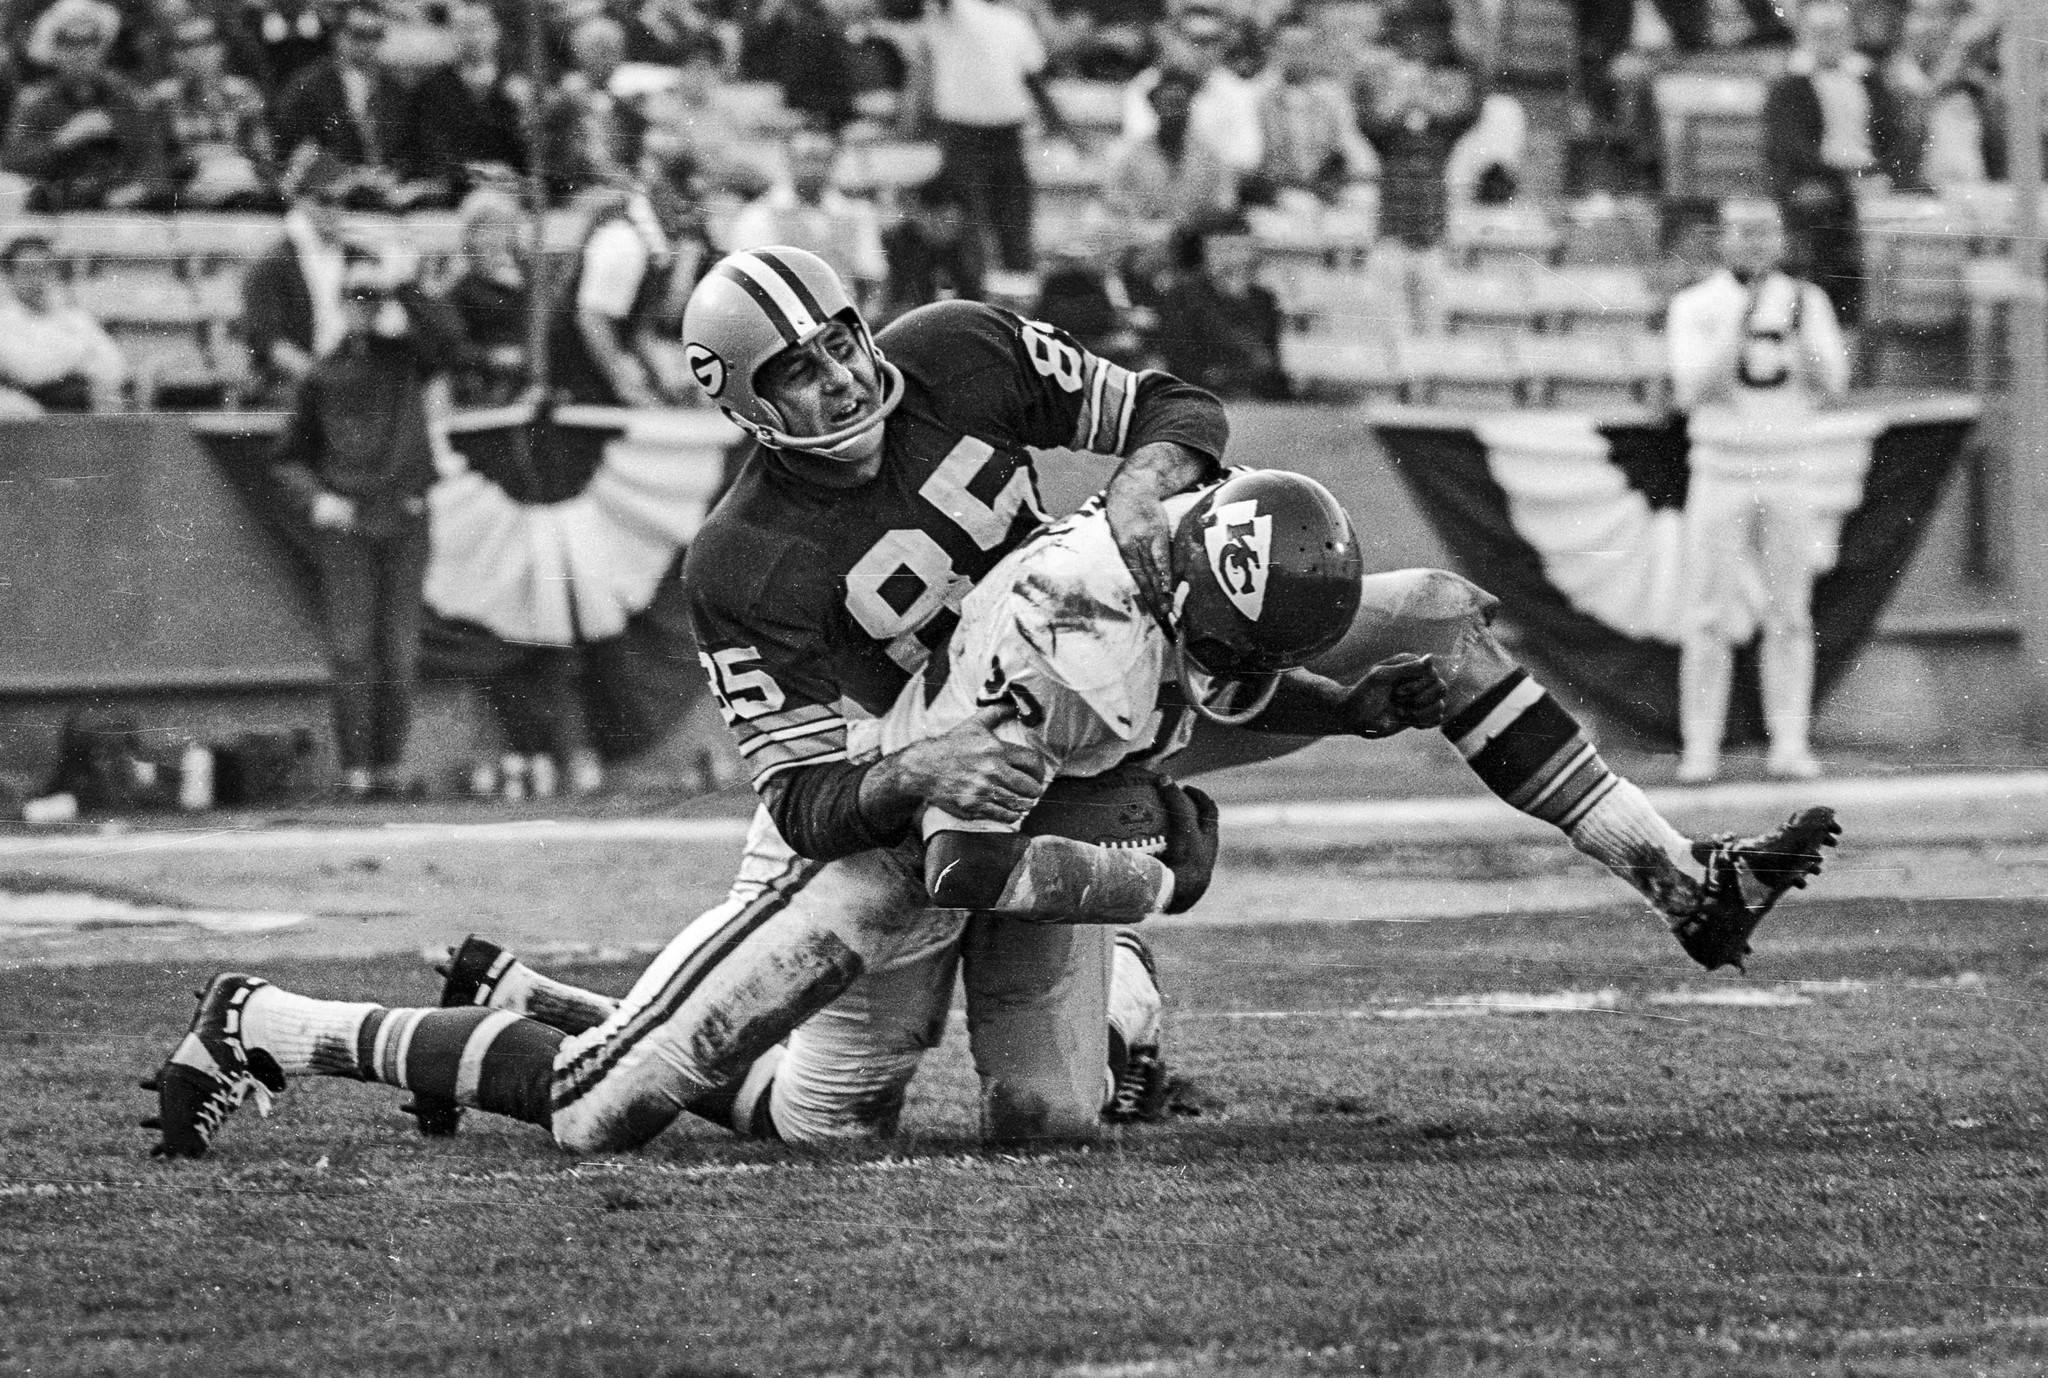 Jan. 15, 1967: Packers receiver Max McGee, 85, secures tackle of Chiefs Willie Mitchell following in